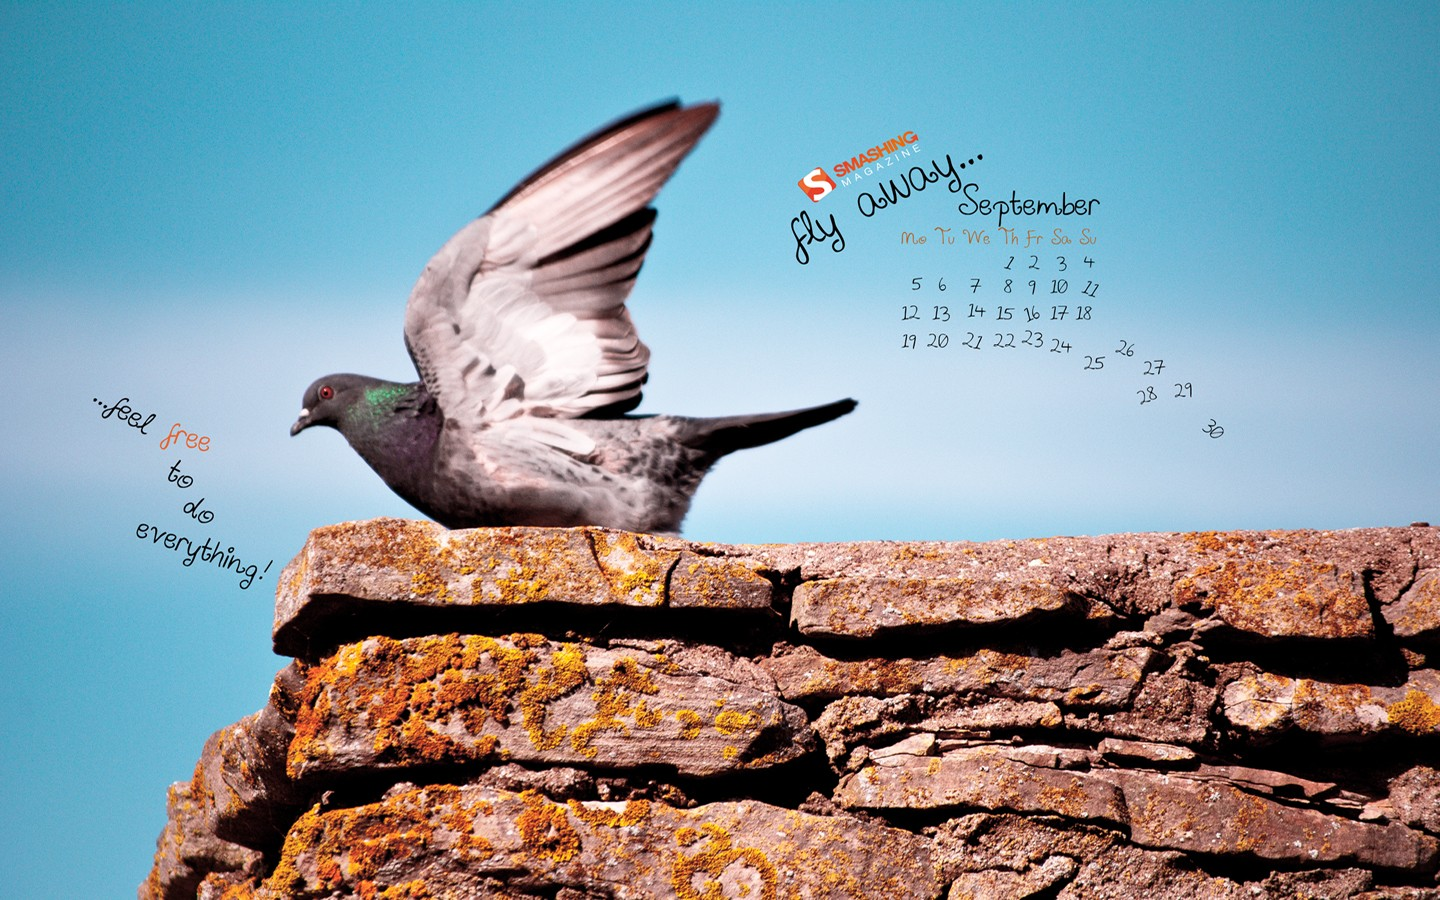 In January Calendar Wallpaper 30100